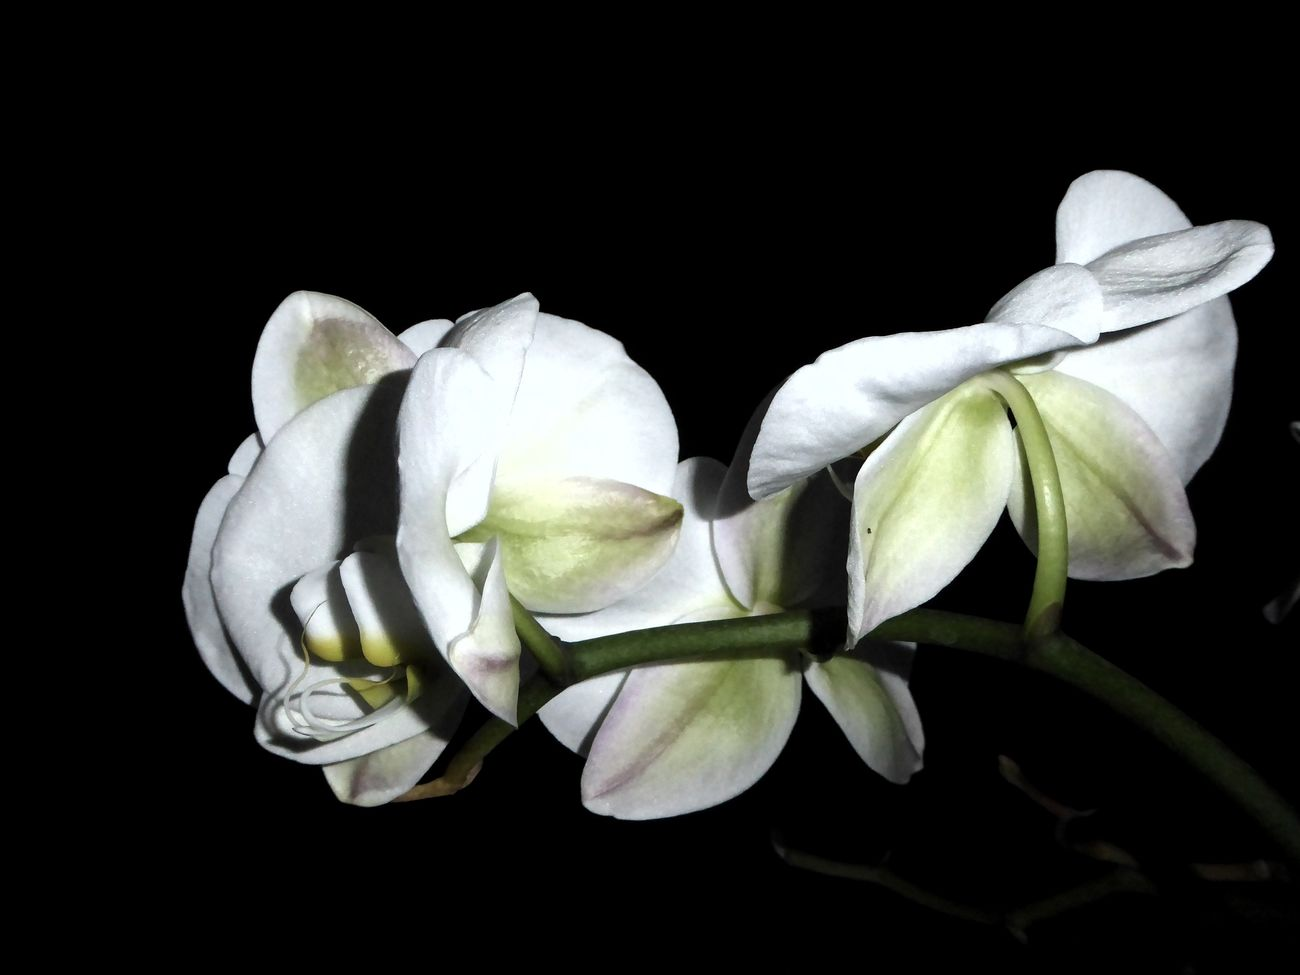 Good Night ♡♡ Sweet Dreams ❤ Black Background Flower Head Unusual View Nightphtography Night Shot Orchid Blossoms Orchid Flower Orchids Contrast In Nature For My Friends 😍😘🎁 Enjoing Life Tranquillity Close-up Beauty In December😍 Loookingup